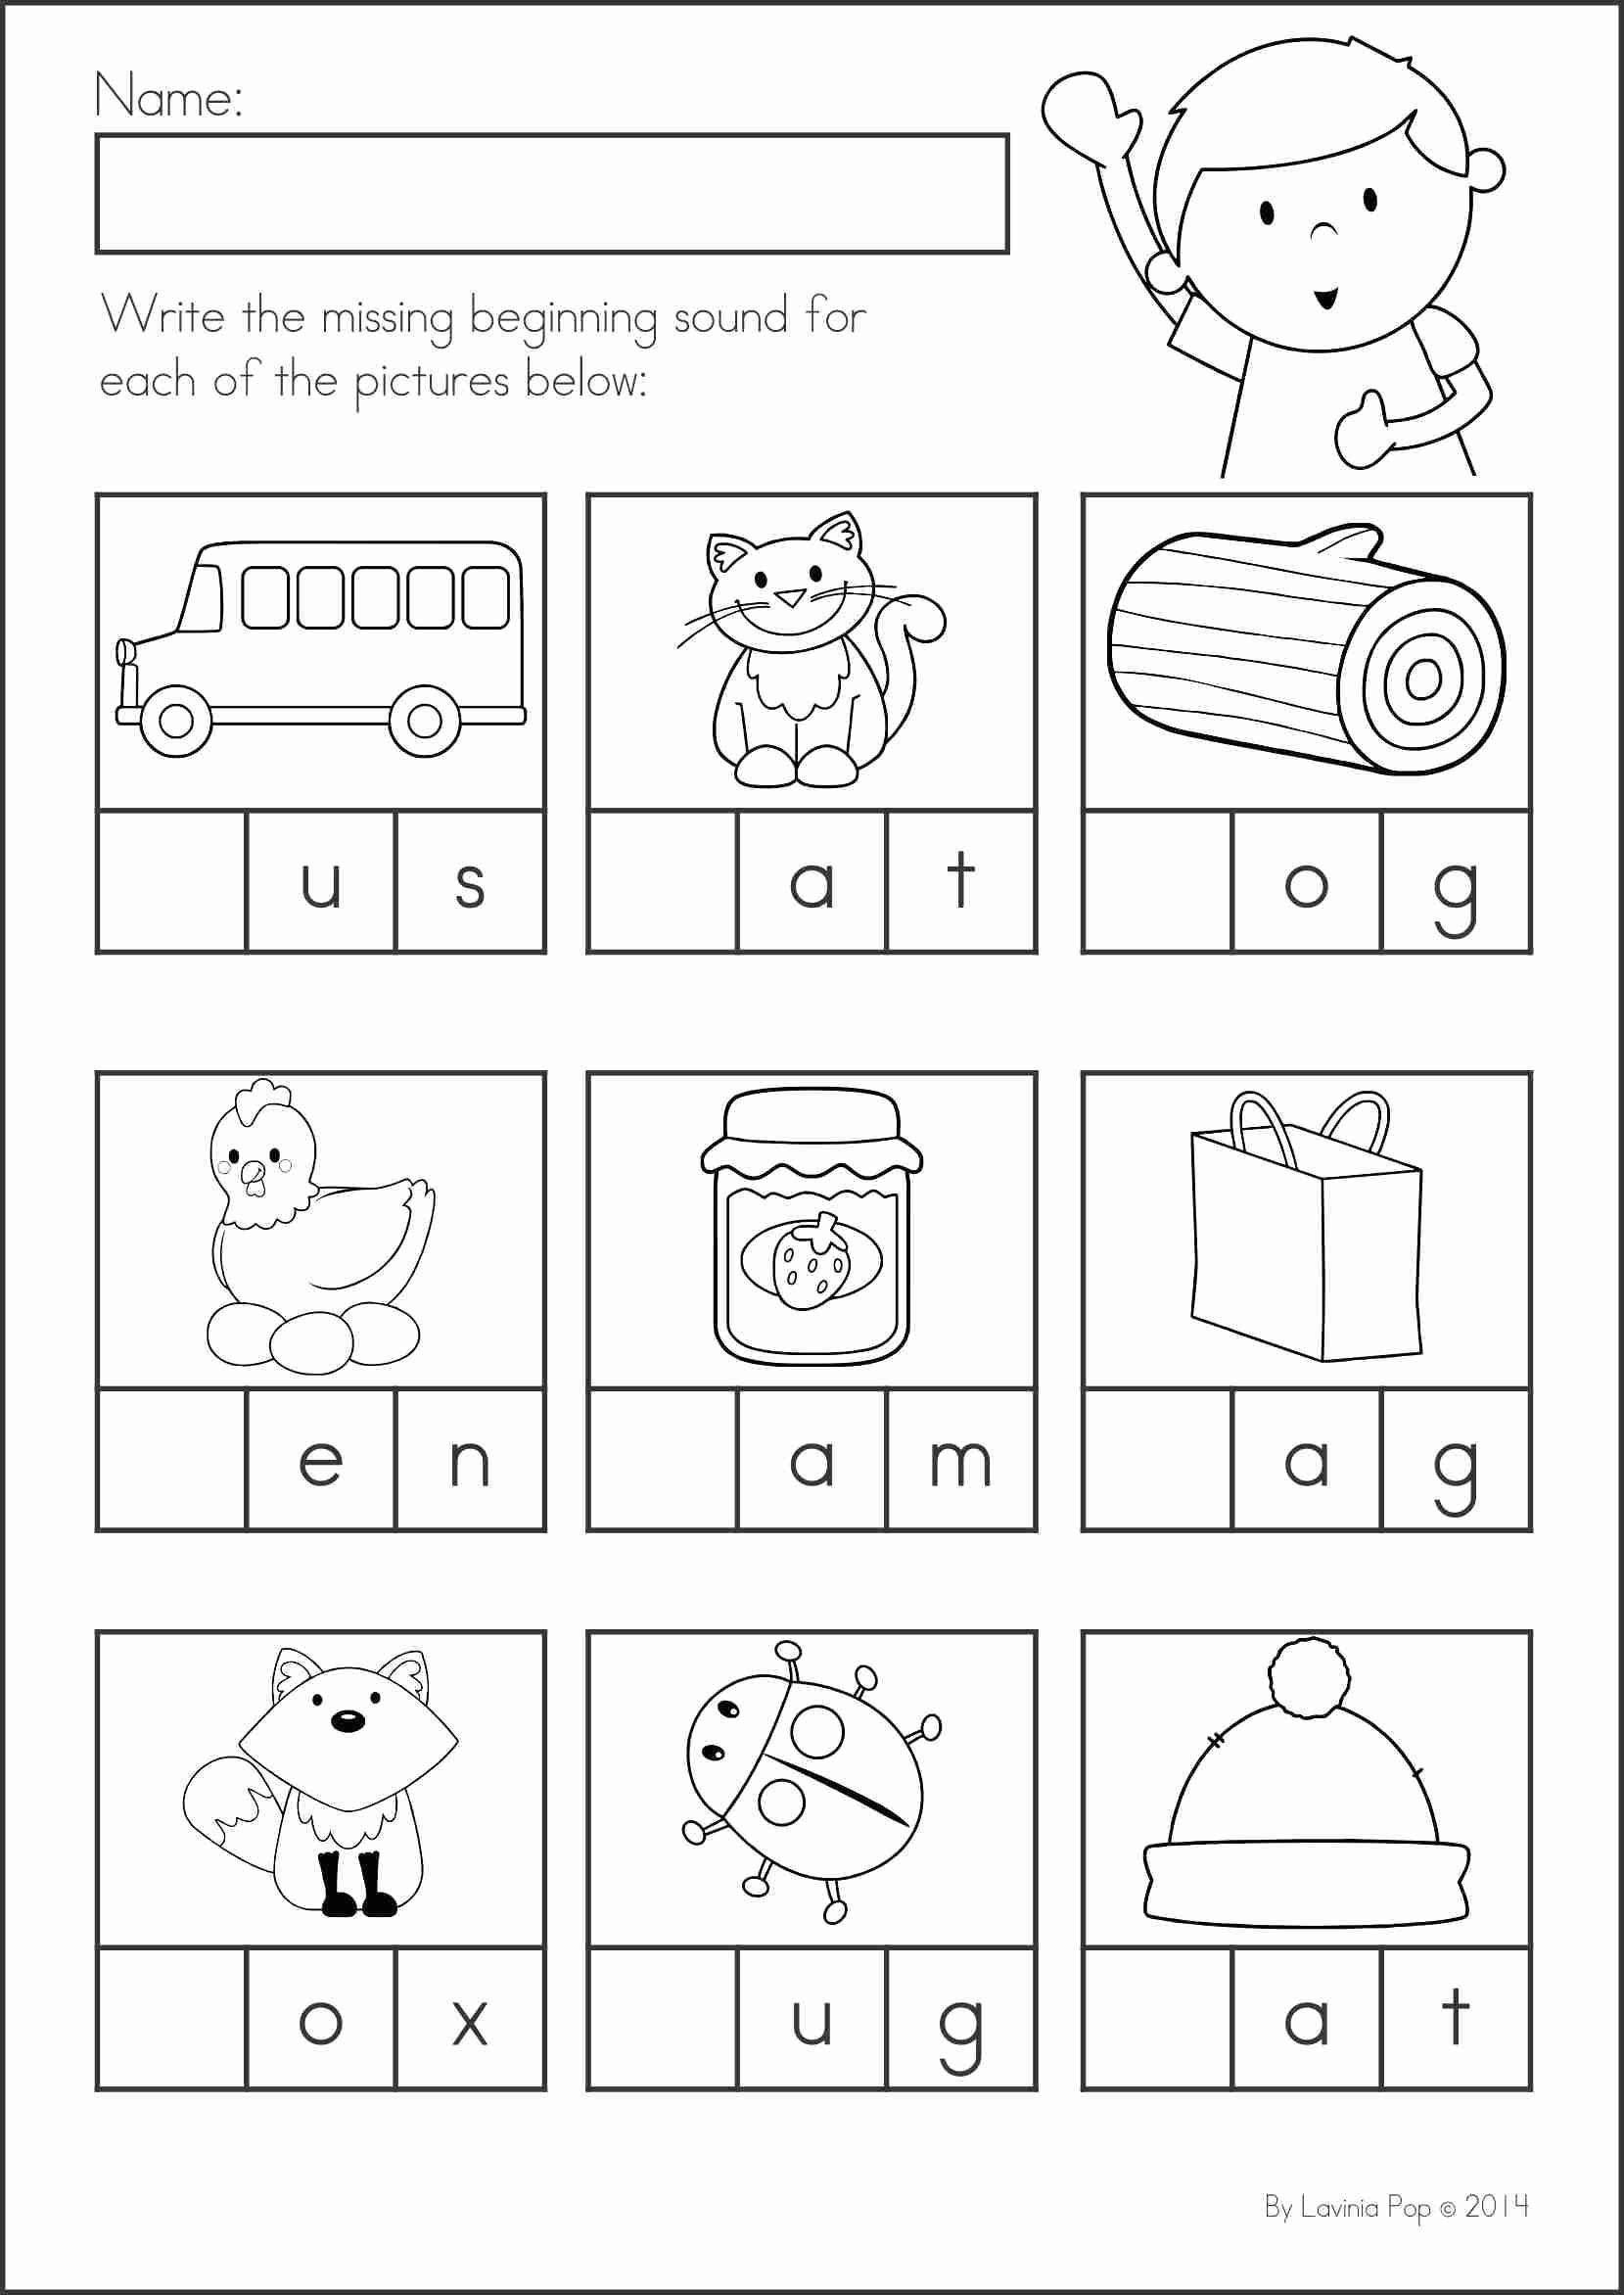 Th sound Worksheets Kindergarten Kindergarteen Ending sound Worksheet